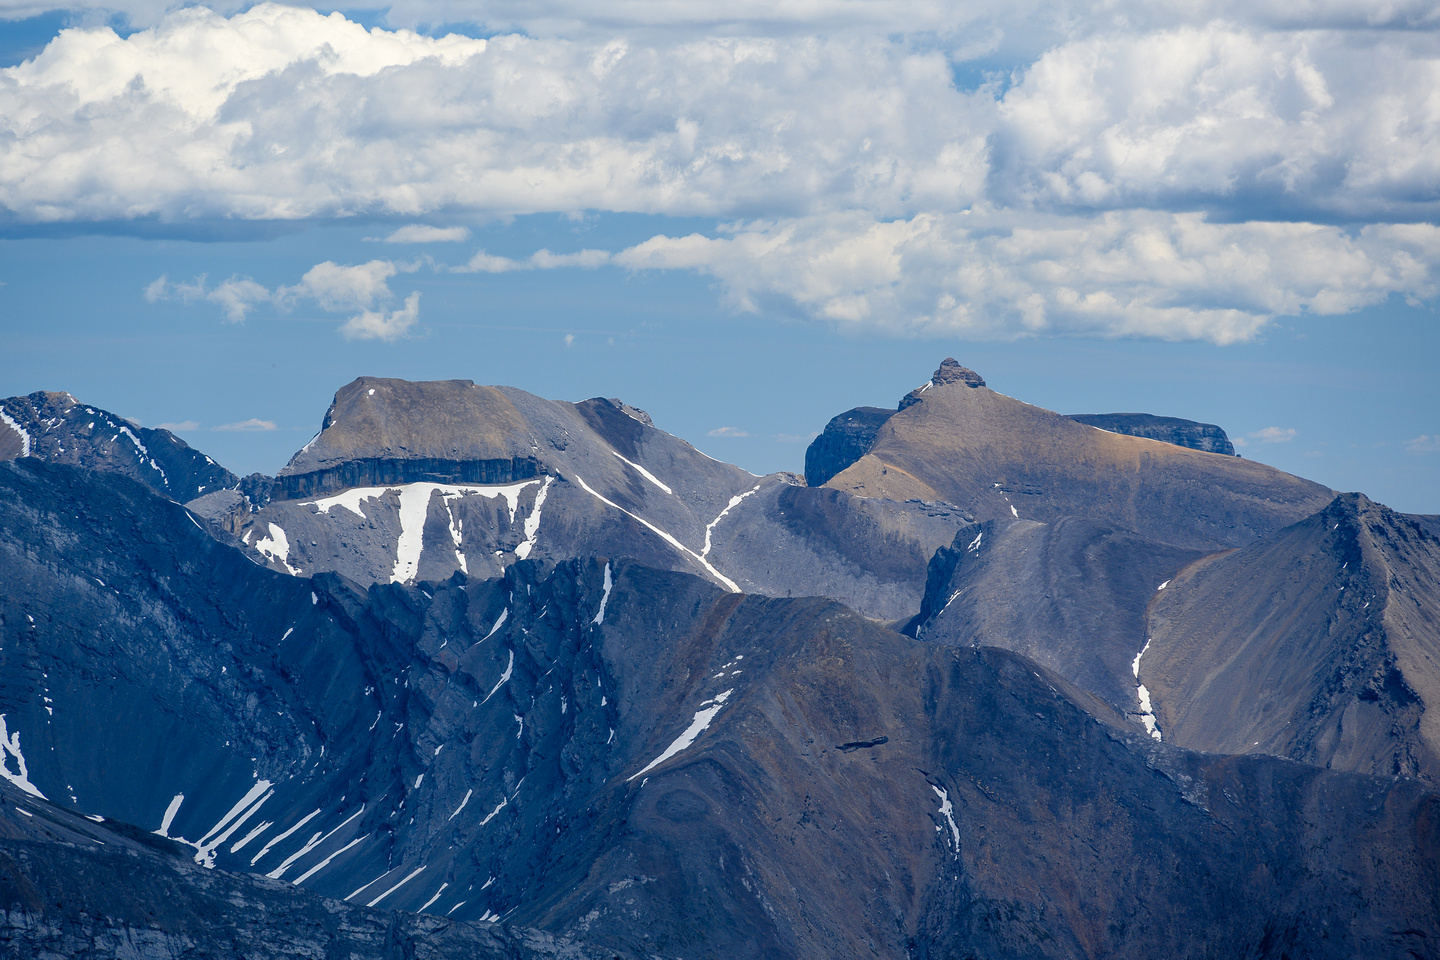 Astral (L) and Castle Rock Peak (R).